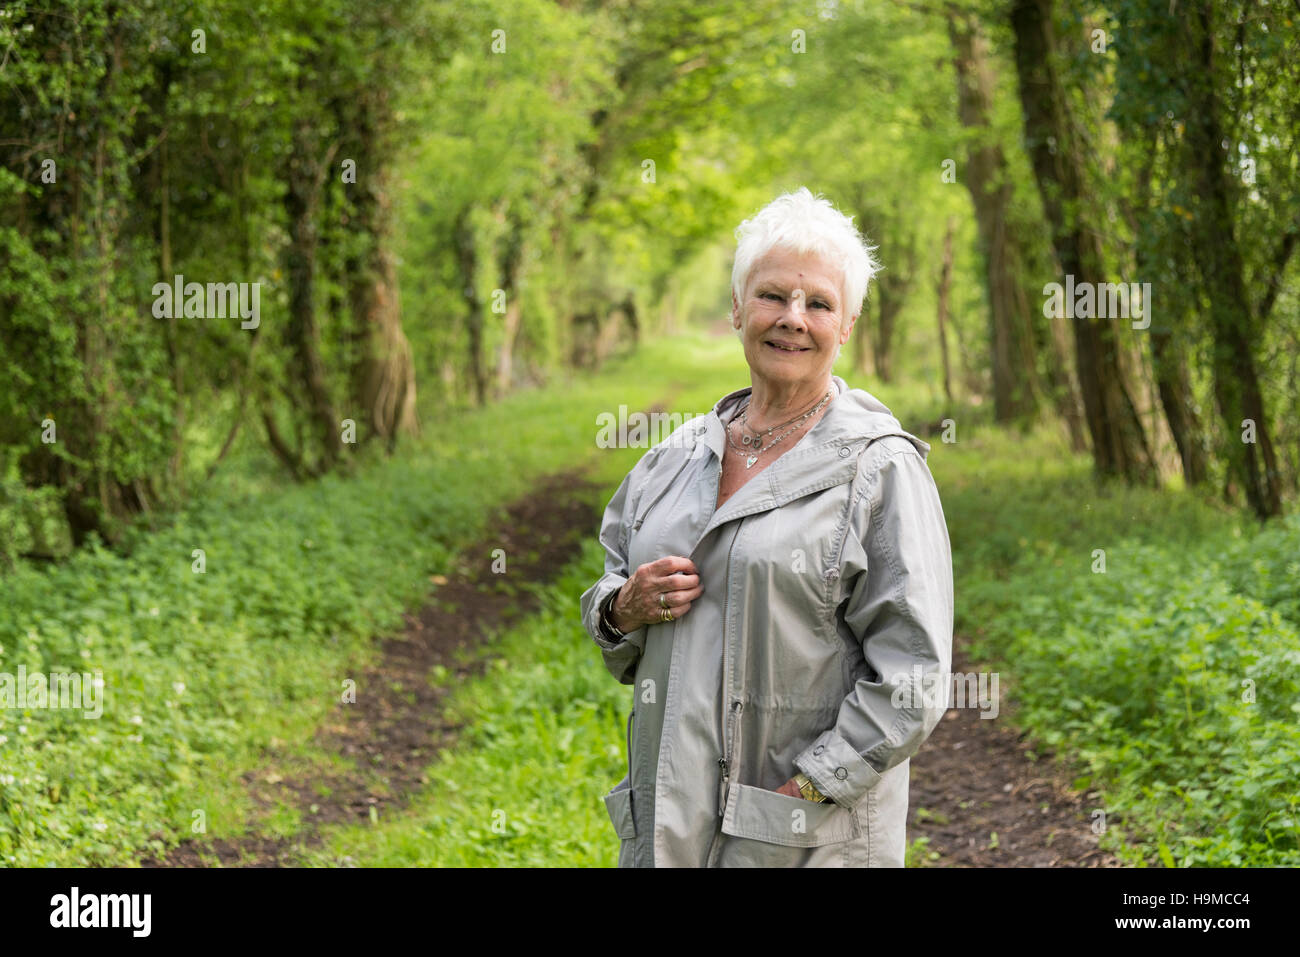 Dame Judi Dench posing in a countryside location Stock Photo